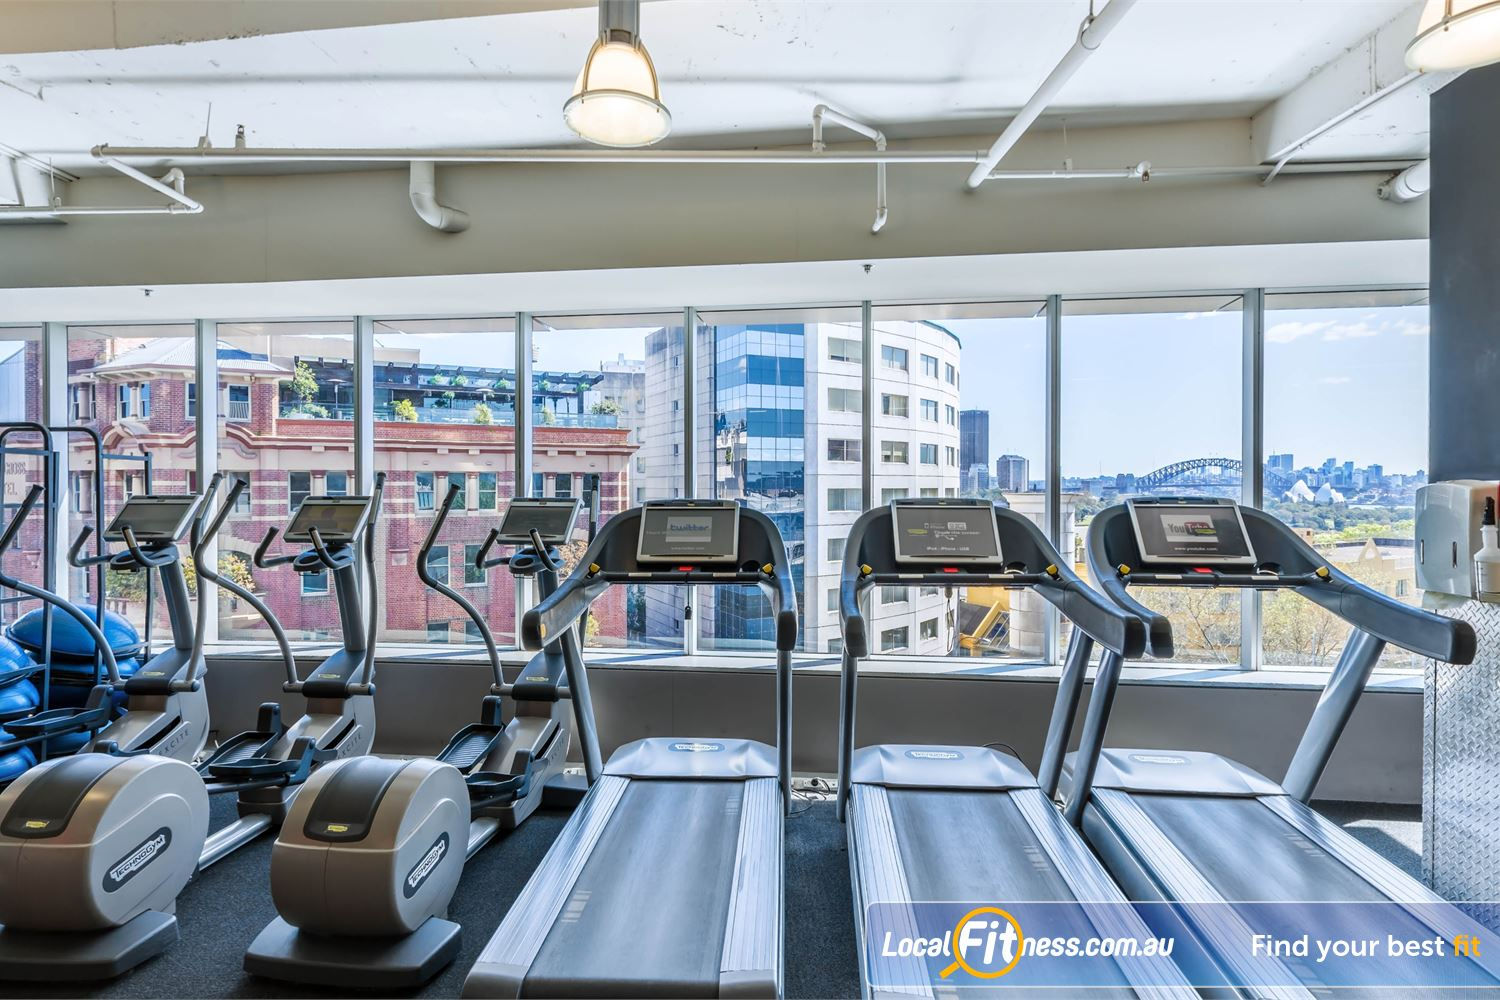 Fitness First Platinum Kings Cross Near Rushcutters Bay Spectacular views of Sydney's iconic Harbour Bridge and Opera House from Fitness First Kings Cross gym.